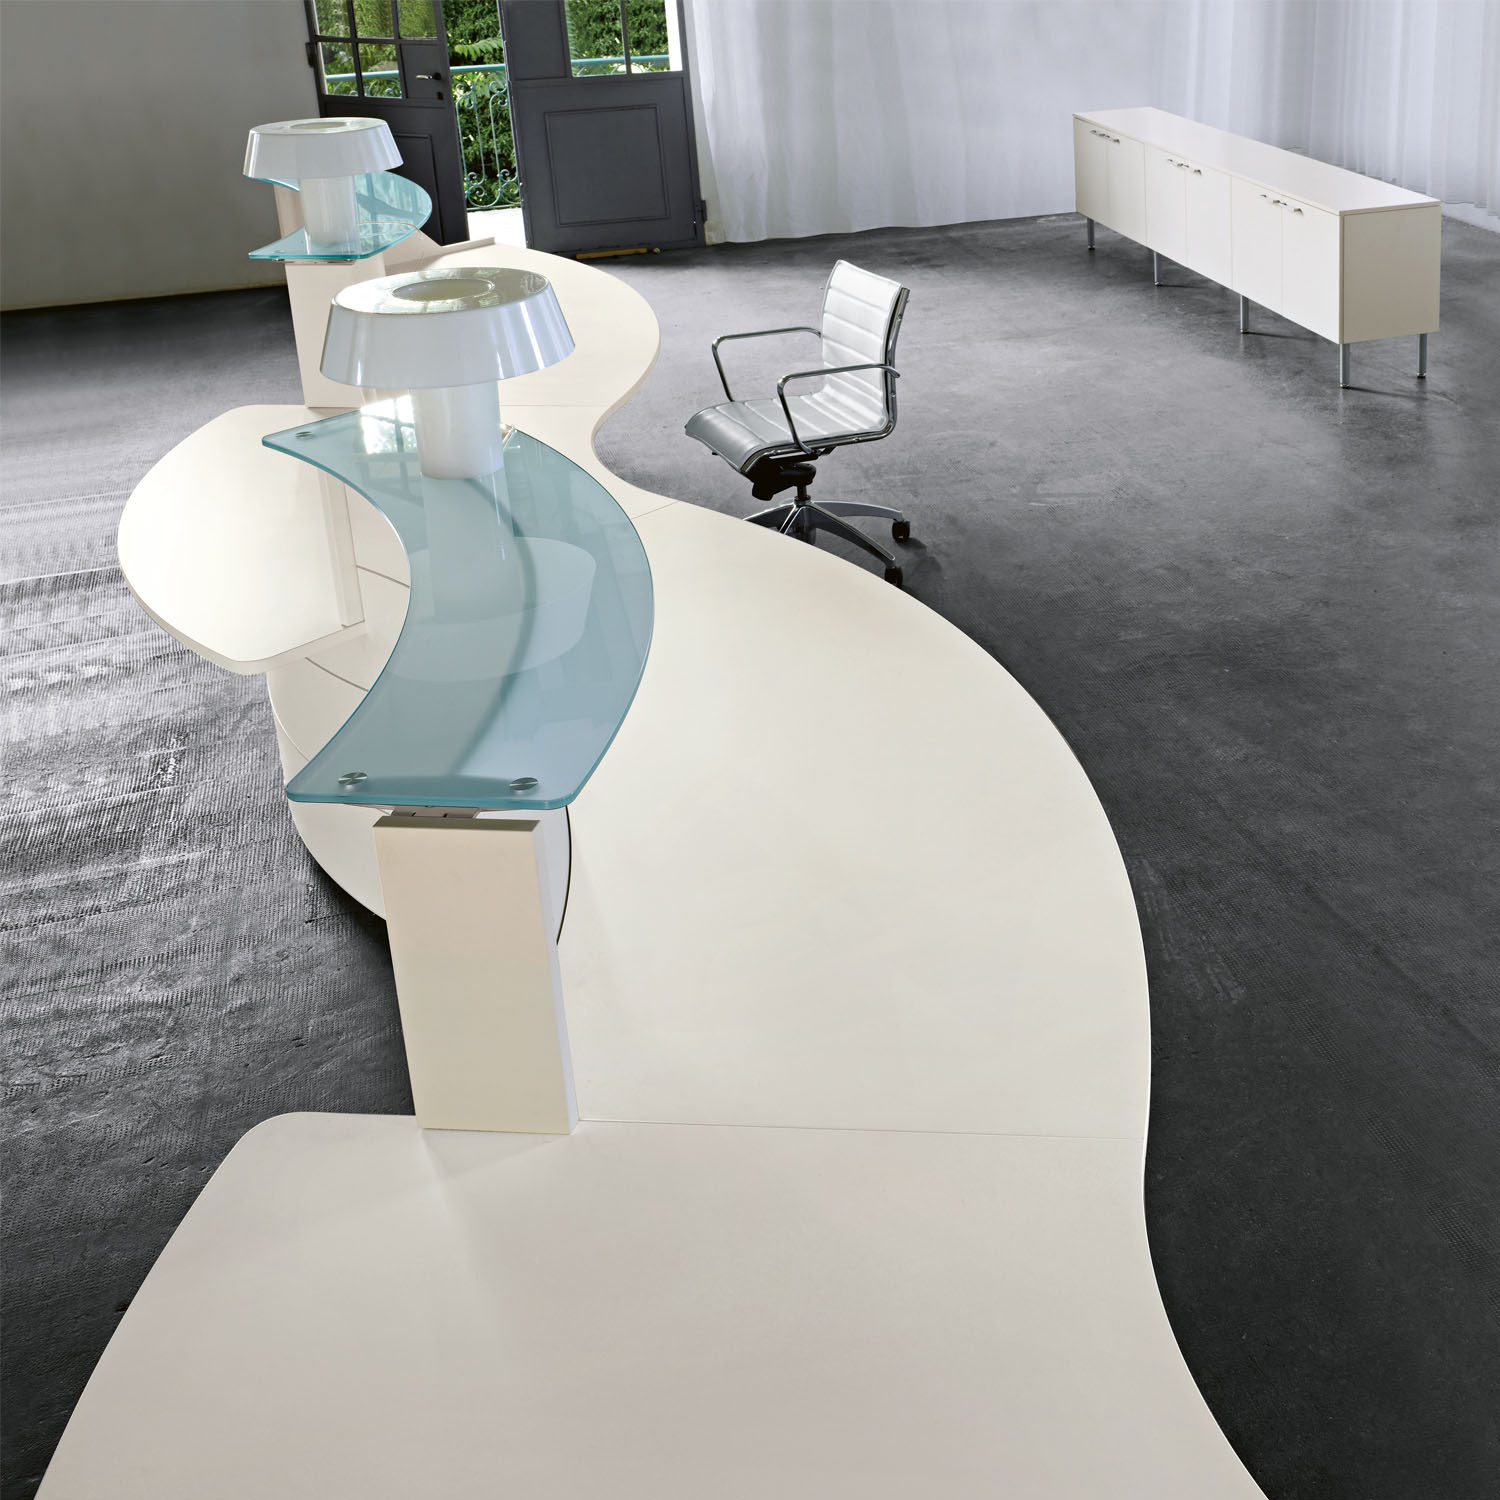 Luna Reception Desk with Glass Counter Top